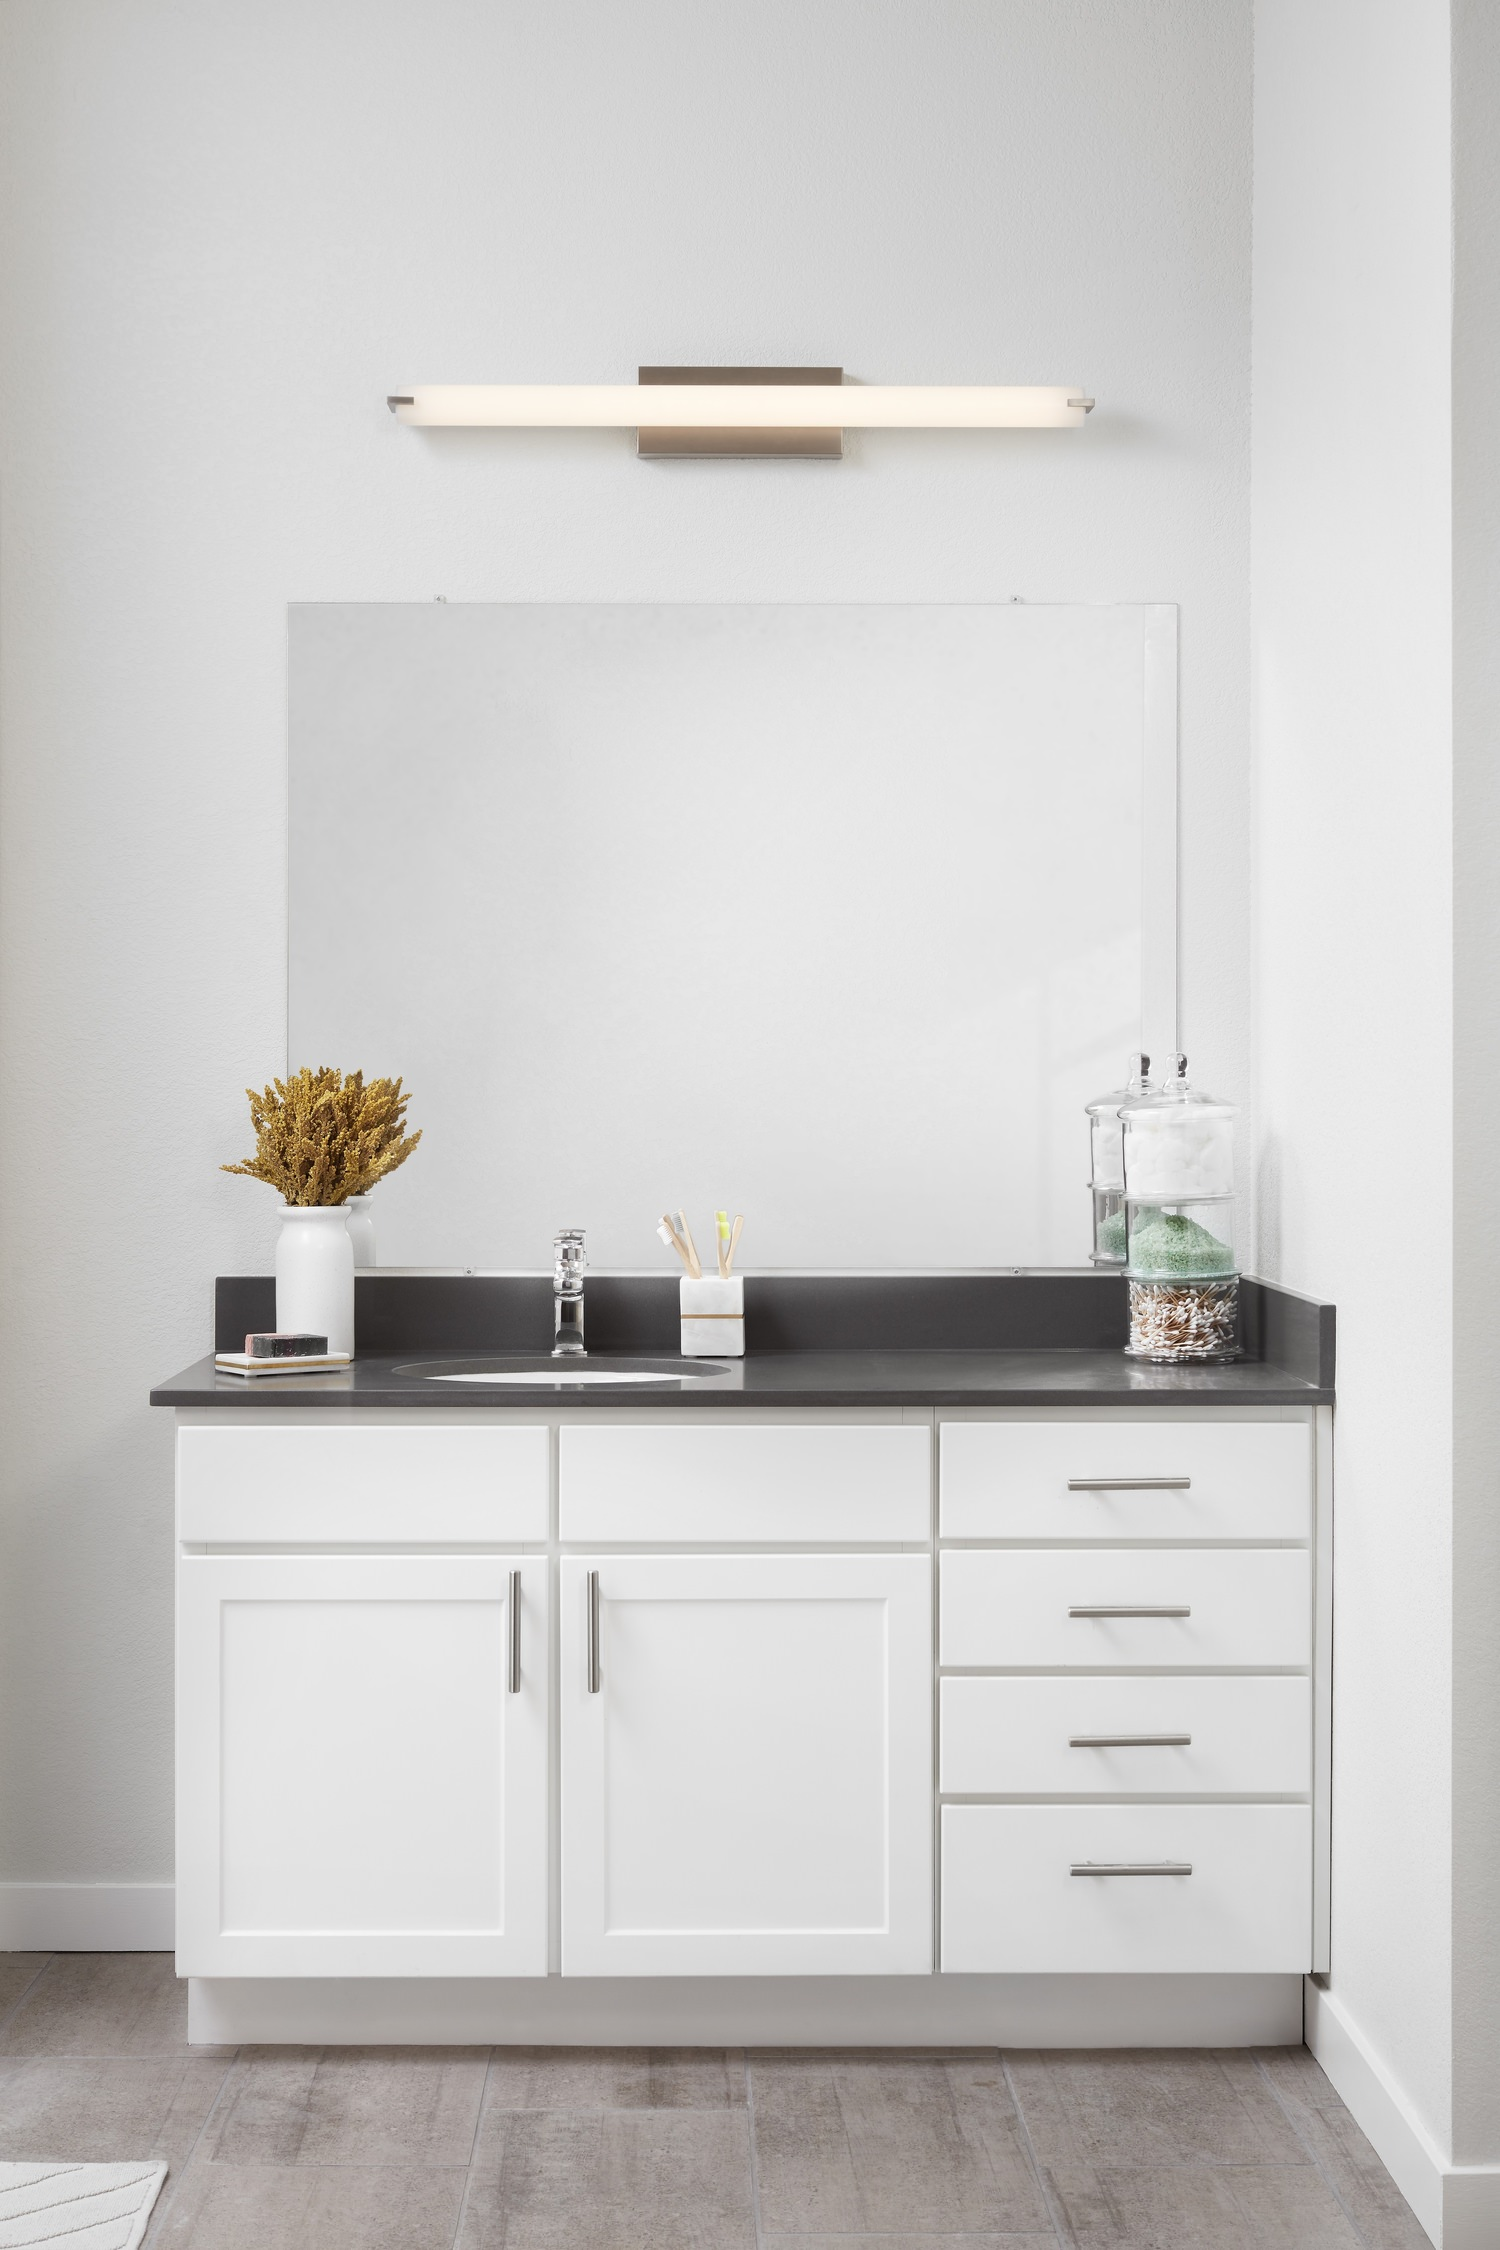 A bathroom vanity that has a sink and white cabinets with black countertops and a light above it.